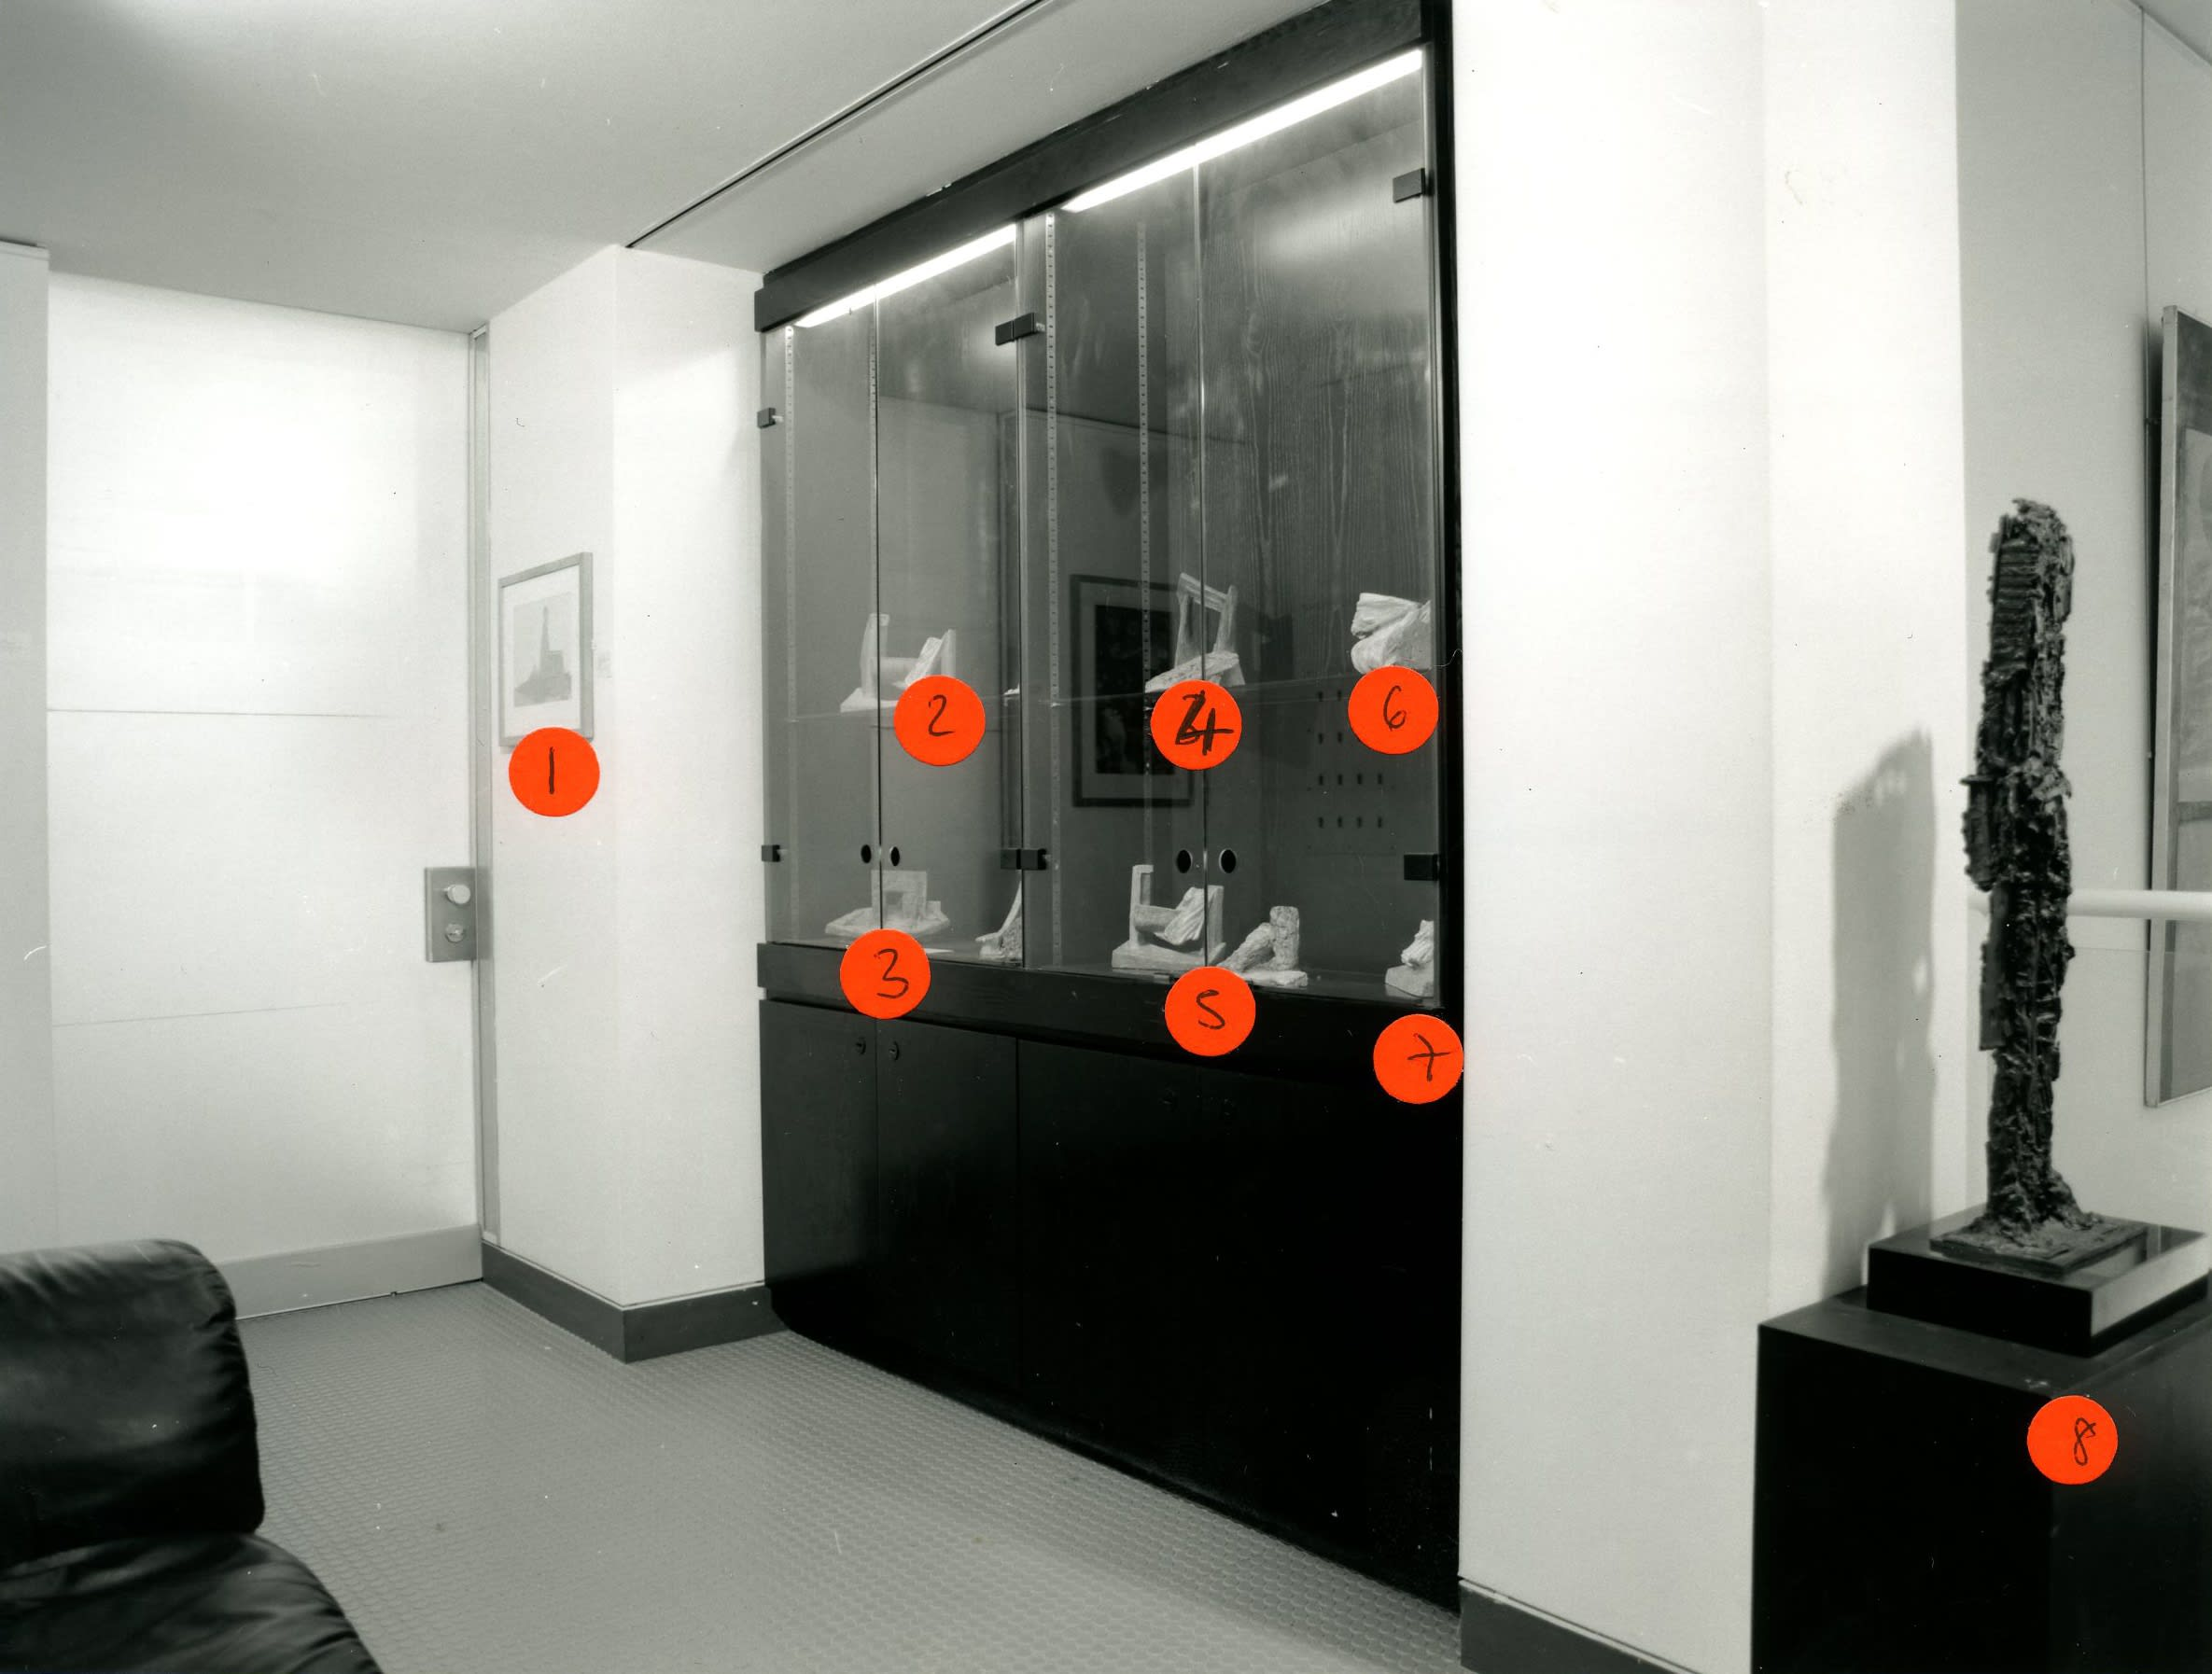 """<span class=""""link fancybox-details-link""""><a href=""""/exhibitions/163/works/image_standalone719/"""">View Detail Page</a></span><p>IVOR ABRAHAMS RA 